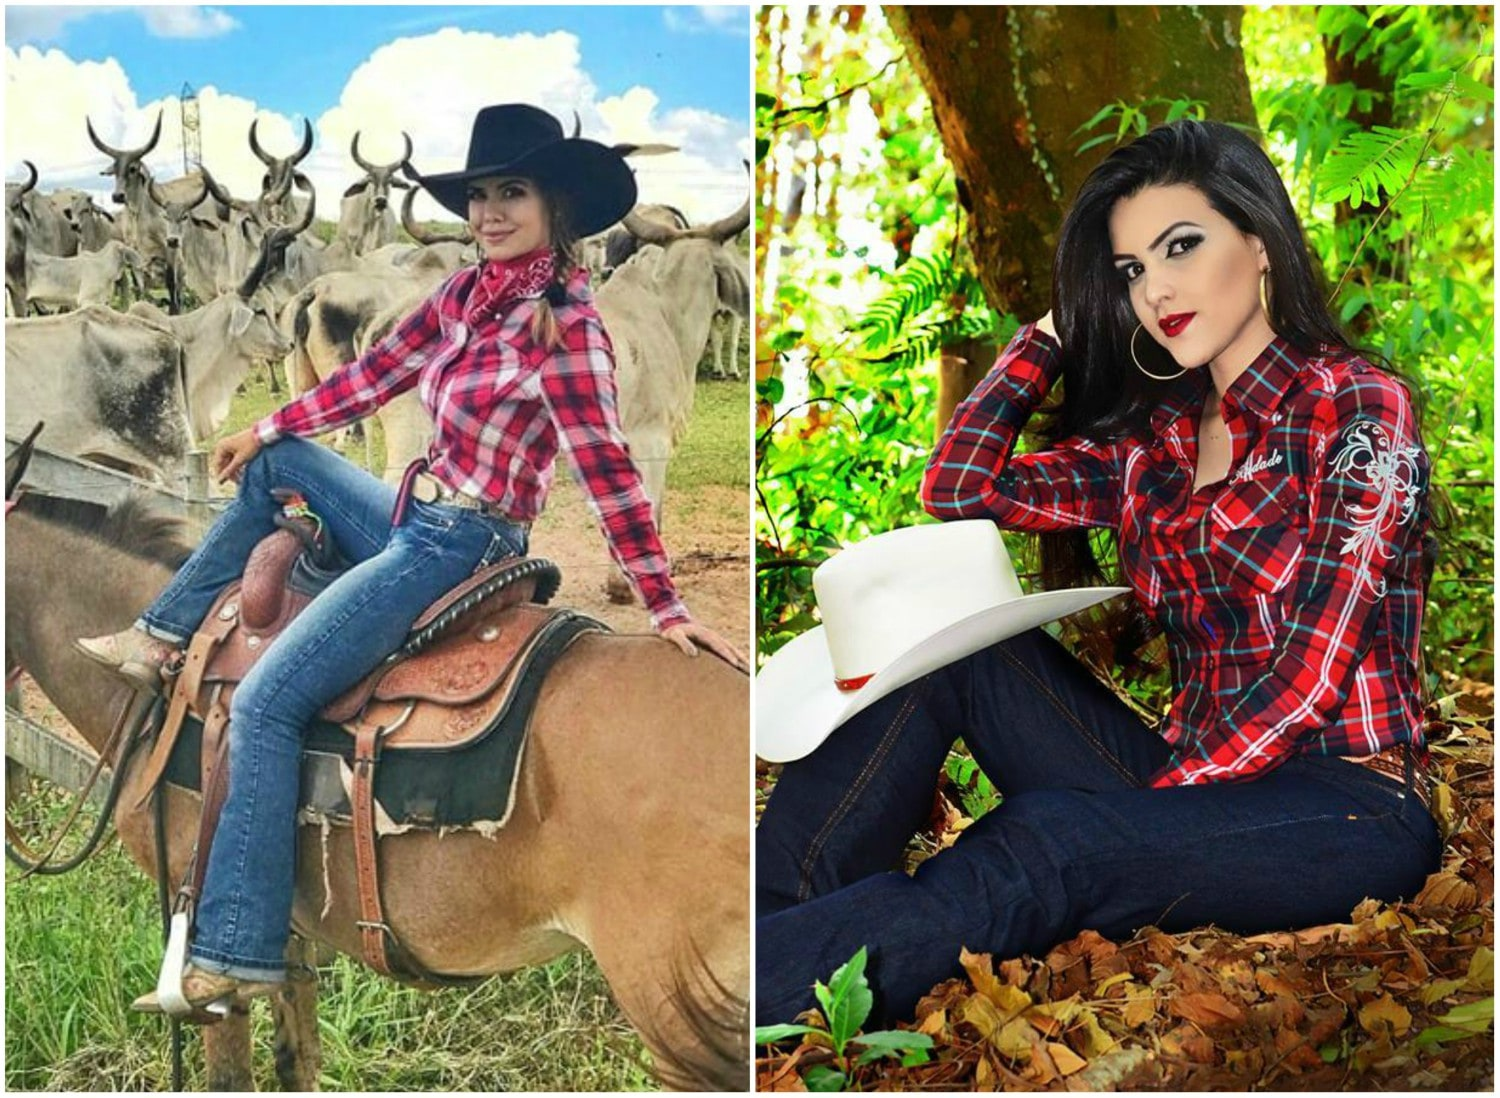 @michellydc / camisa cowboy store